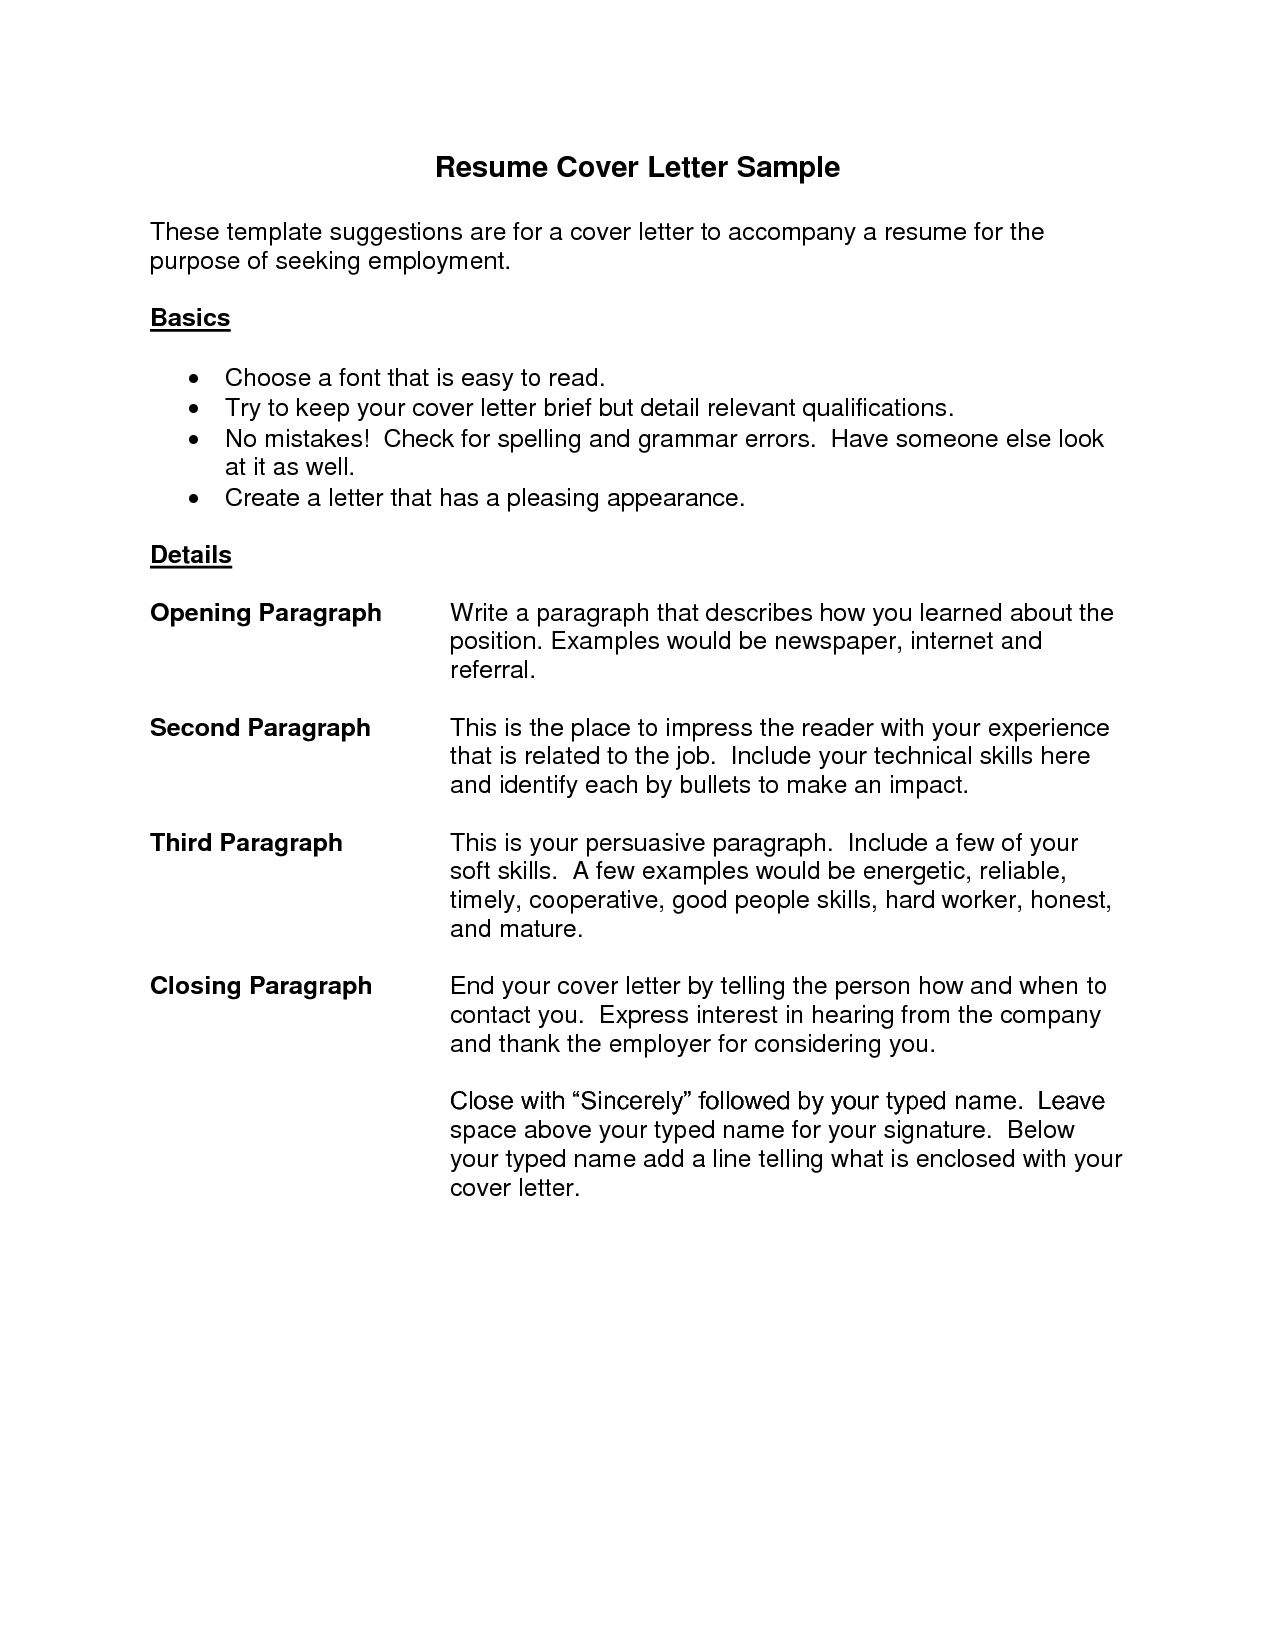 What Is A Cover Letter For An Application Cover Letter Resume Best Templatesimple Cover Letter Application